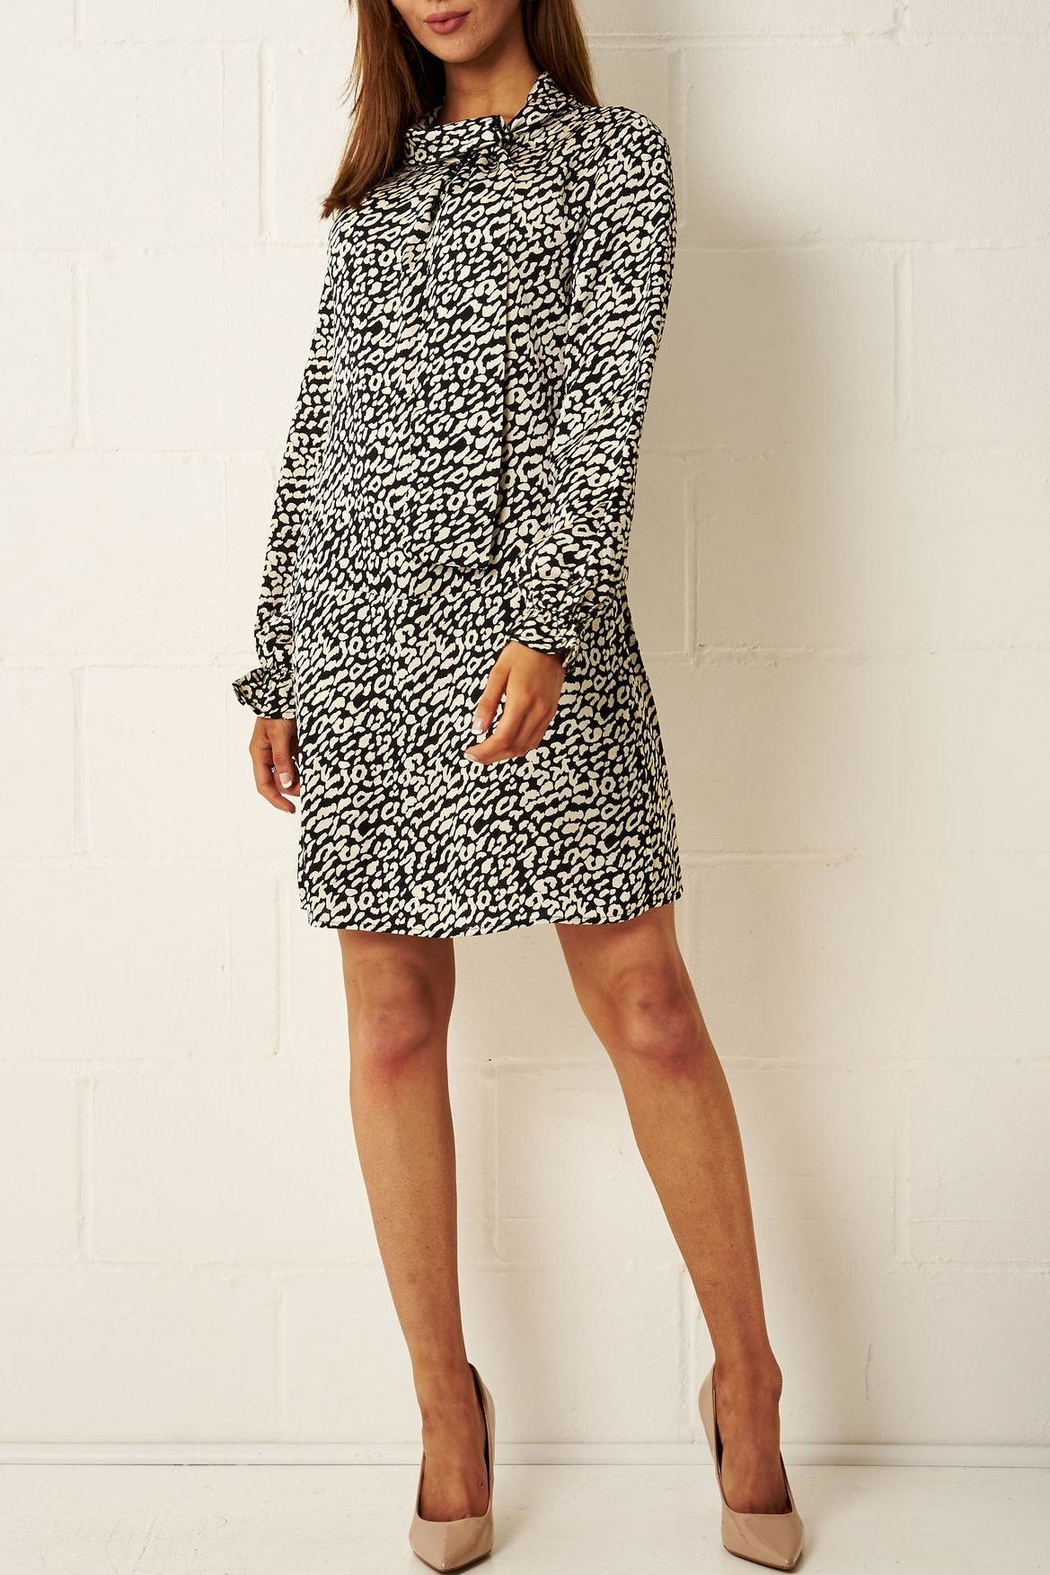 frontrow Cream Leopard-Print Dress - Side Cropped Image